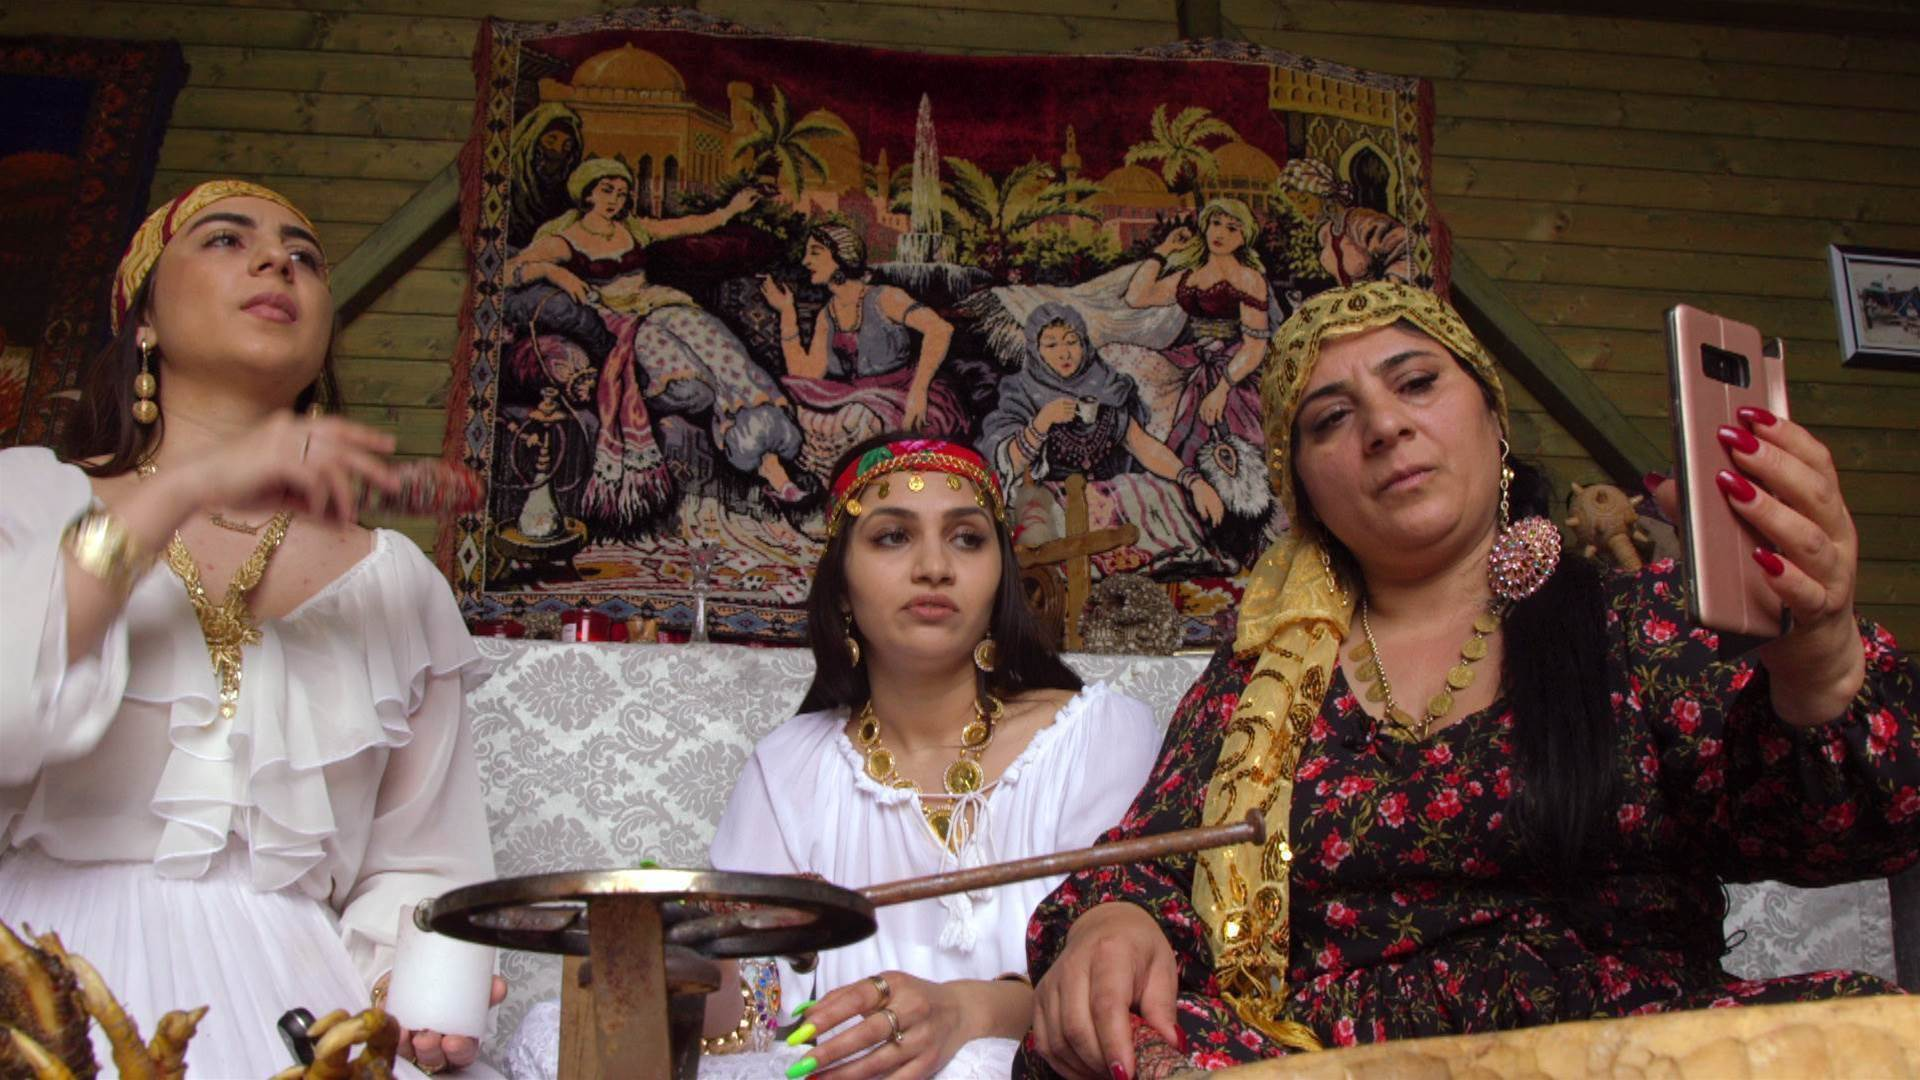 Romania's witches harness the powers of the web